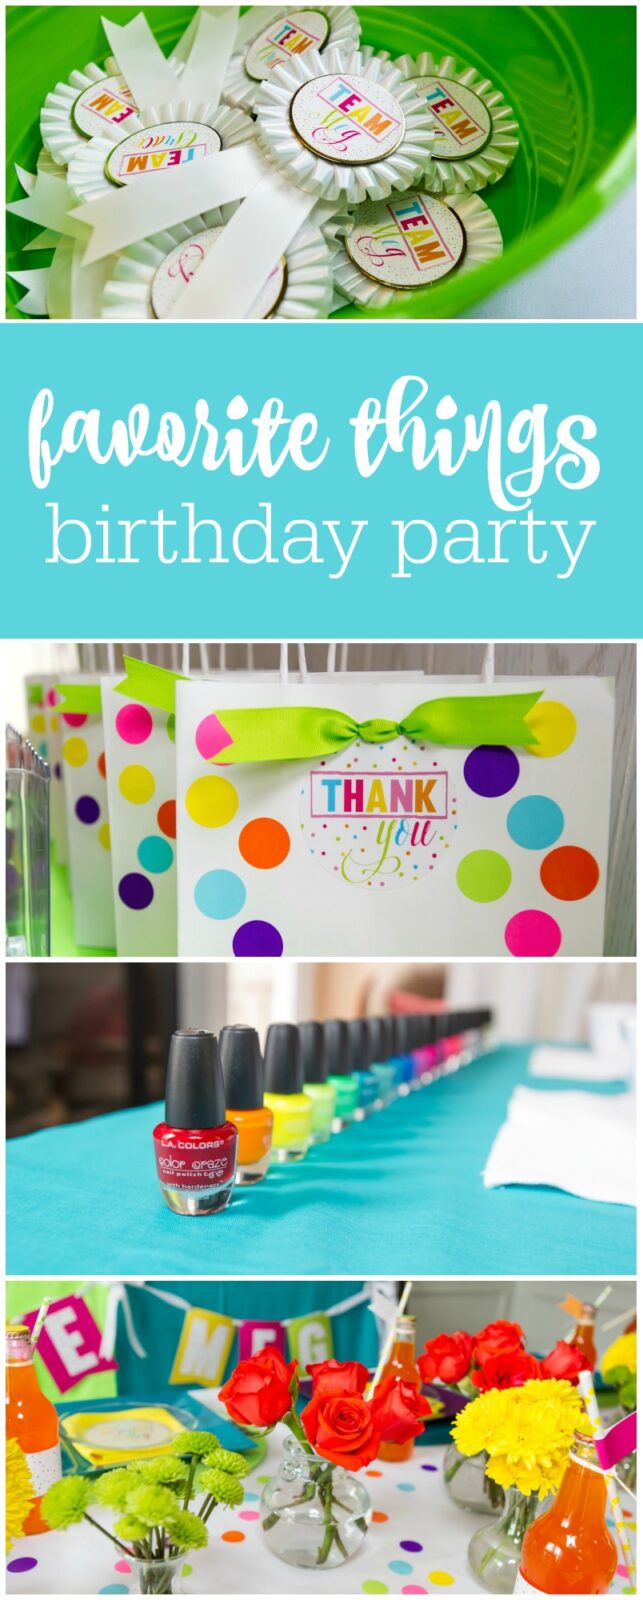 How to host a favorite things birthday party by The Party Teacher